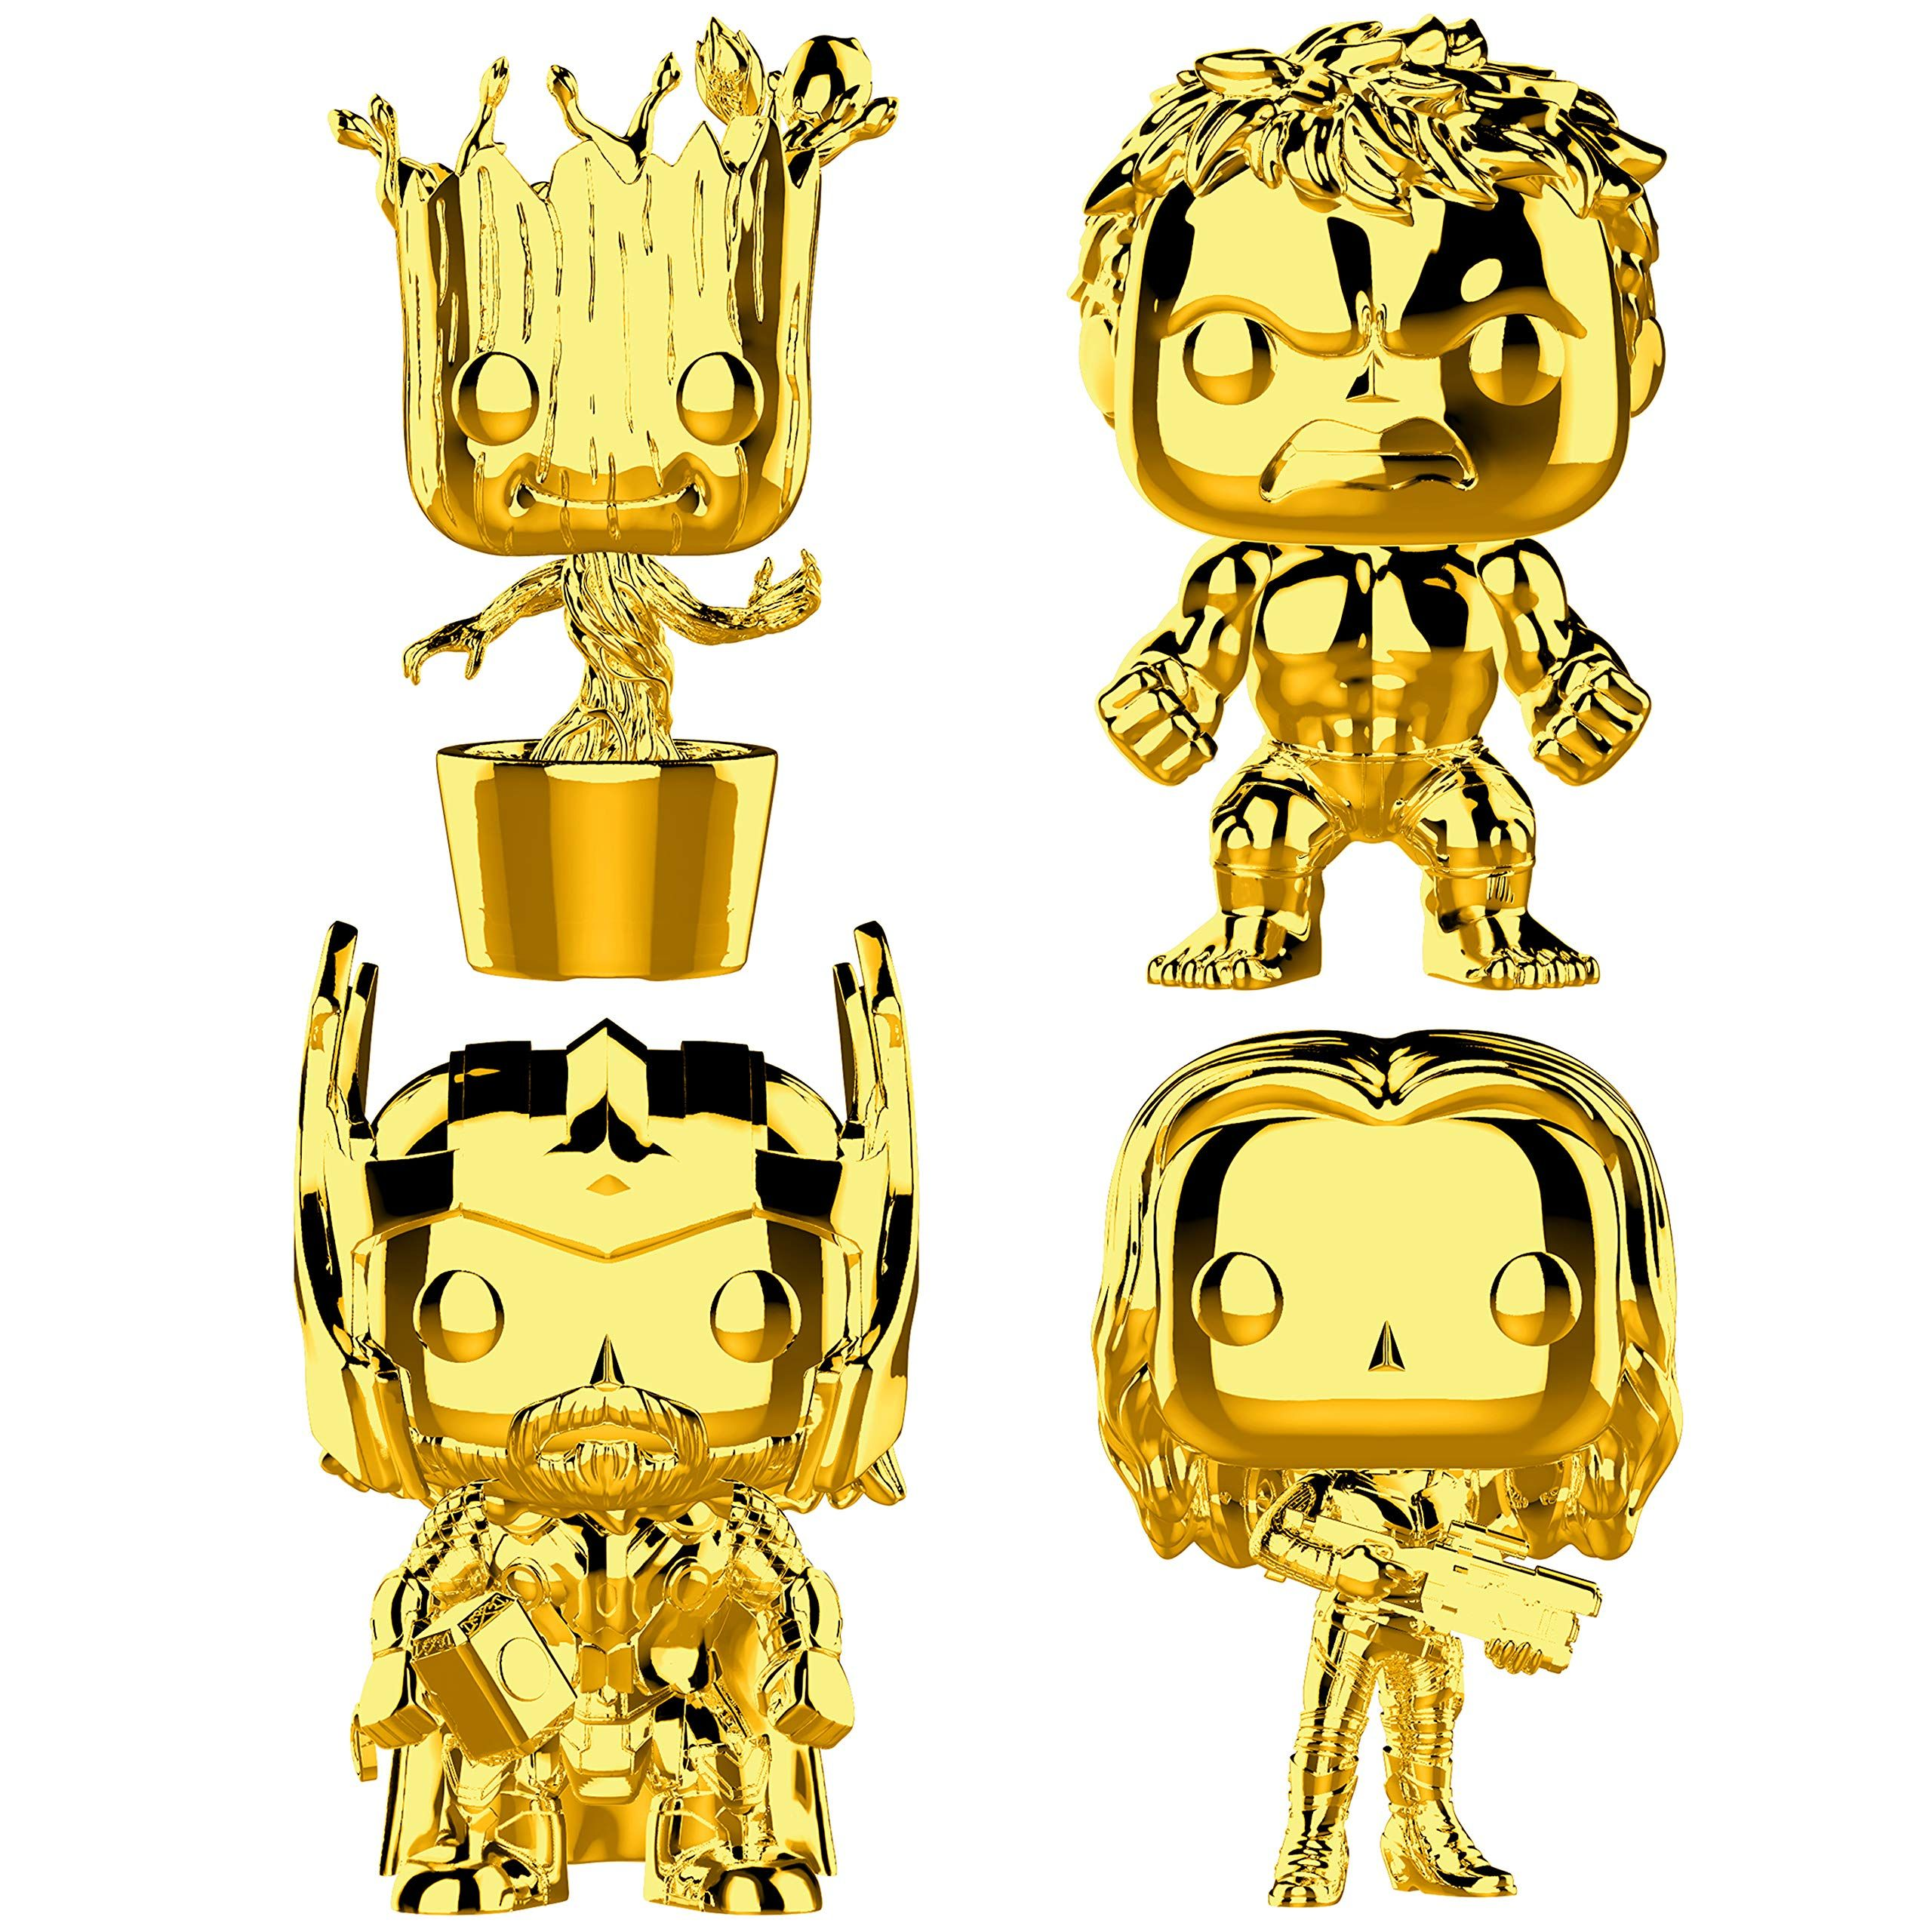 Funko Marvel Pop Marvel Studios 10 Gold Chrome Collectors Set 3 Groot Hulk Thor Gamora Toy Click Image To Review In 2020 Vinyl Figures Marvel Studios Funko